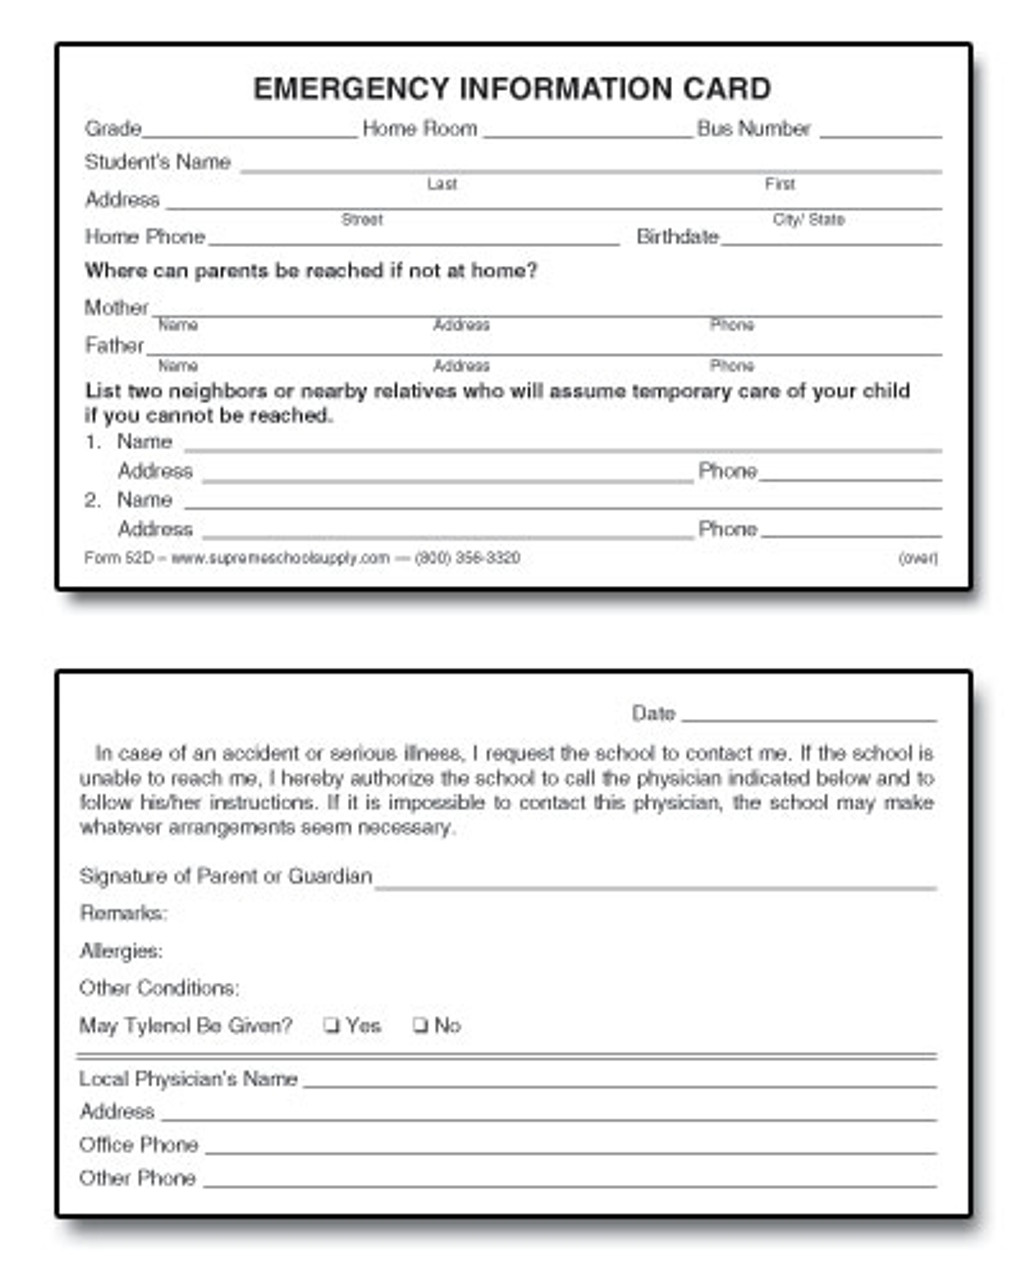 Emergency Information / Authorization Card (52D)